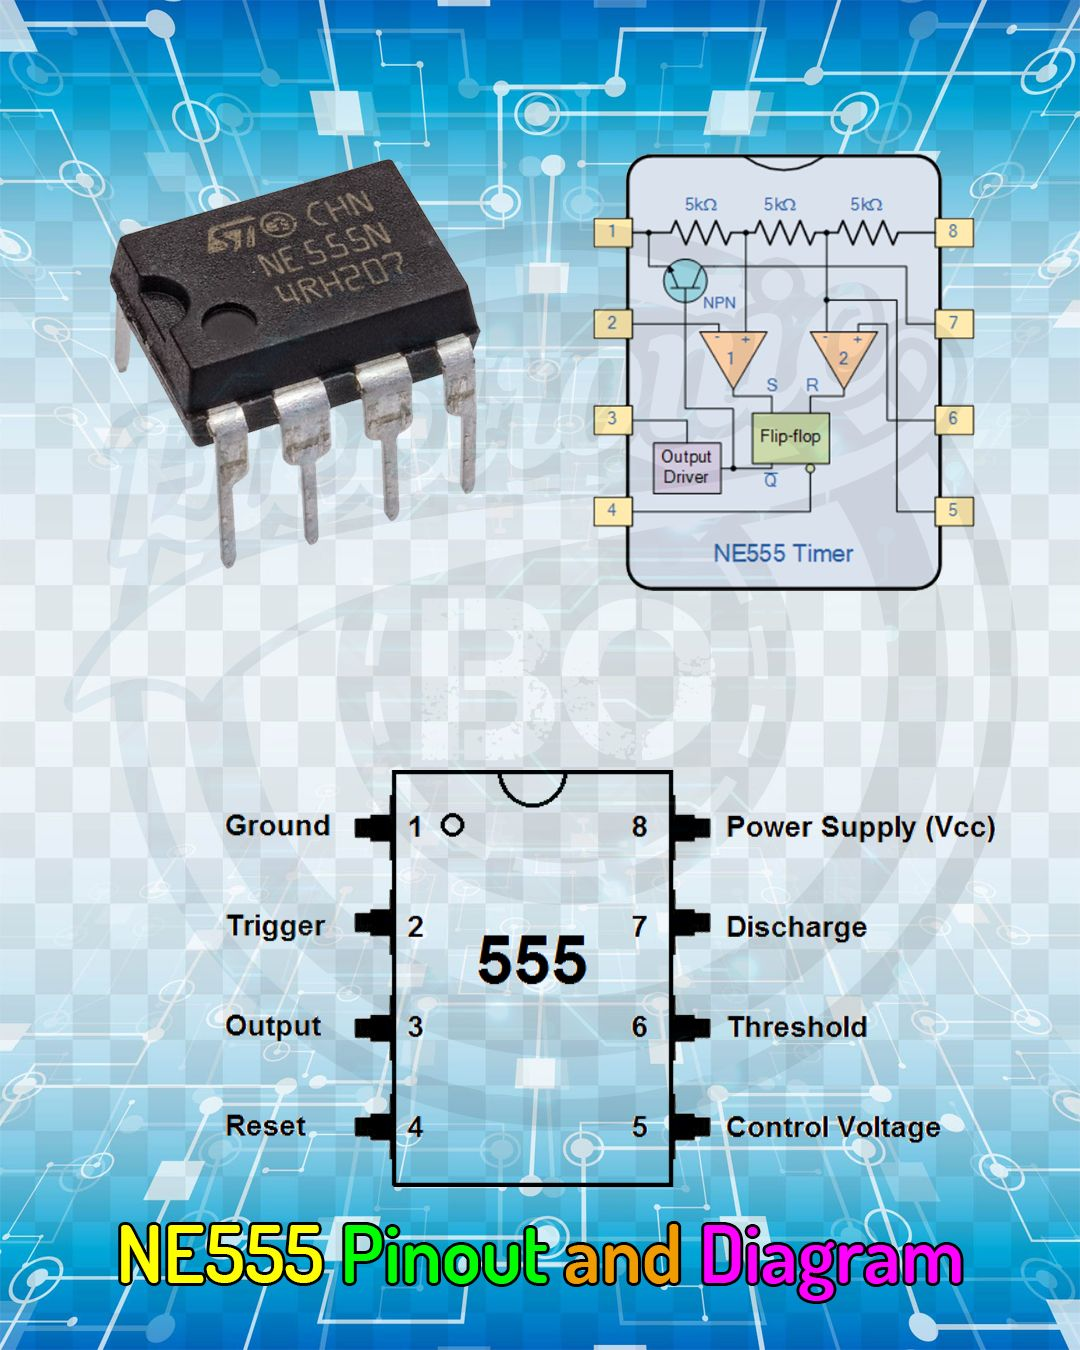 hight resolution of ne555 pinout and diagram